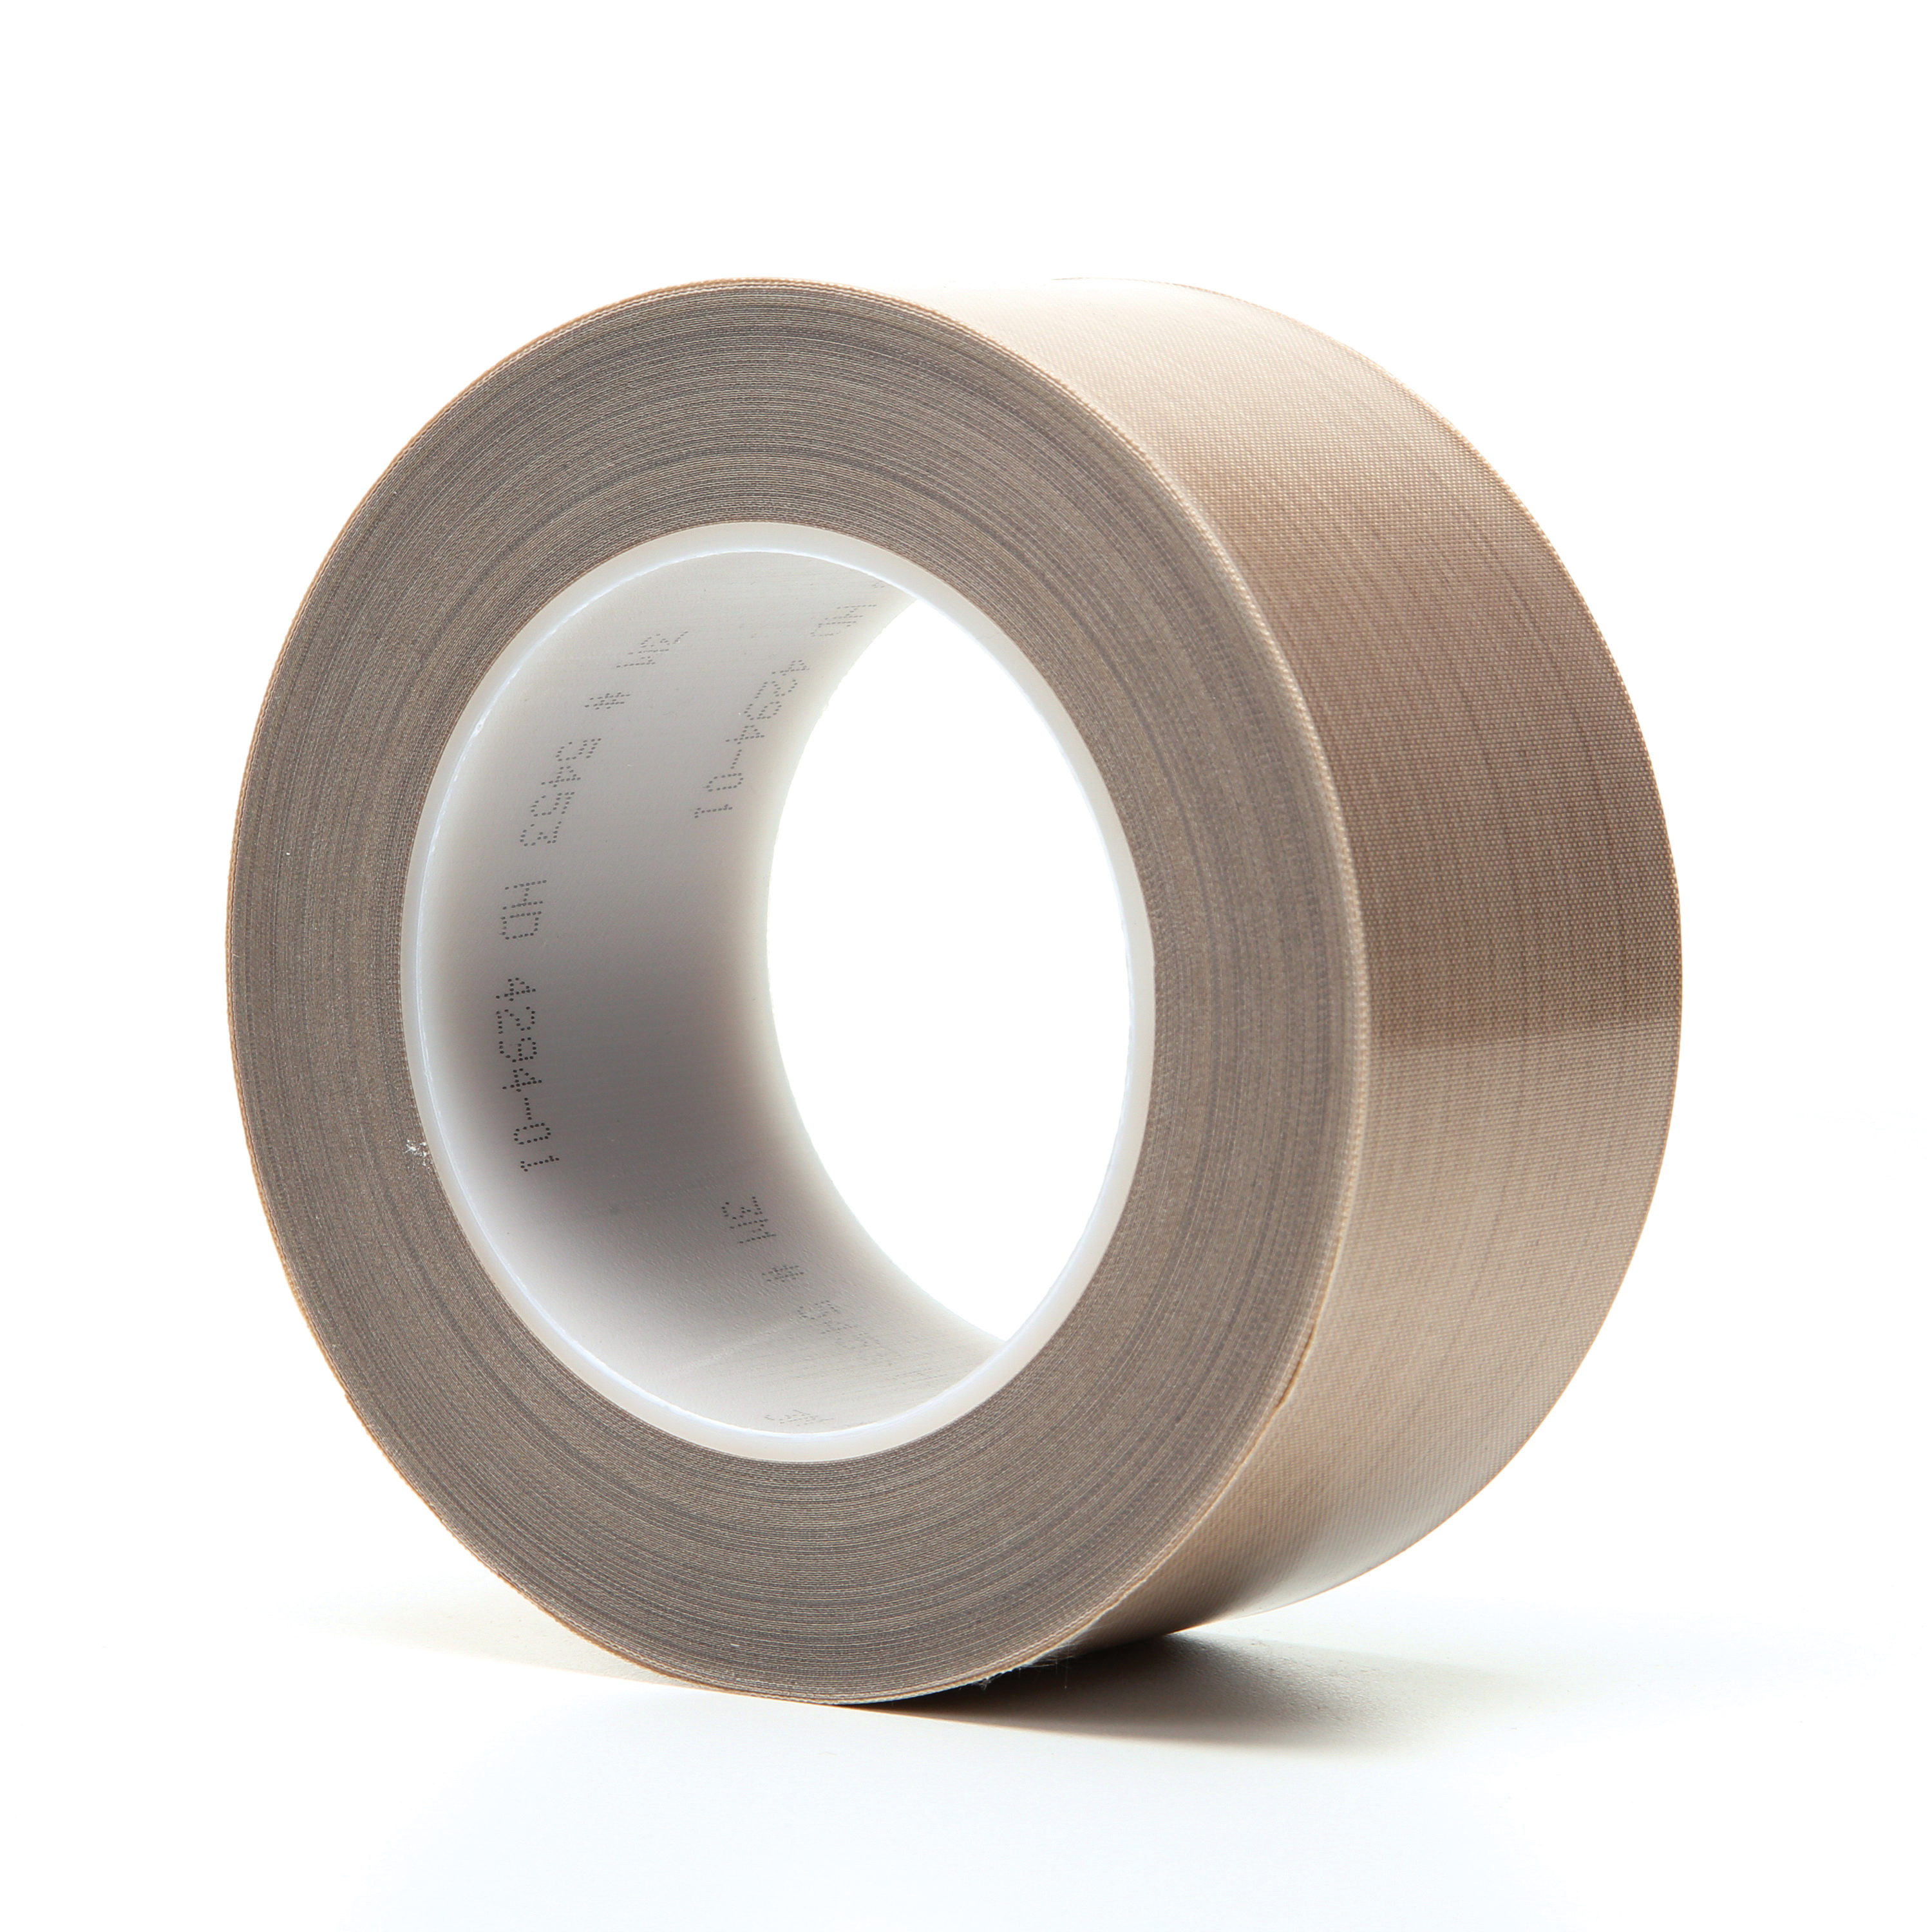 3M™ 021200-16162 Pressure Sensitive Glass Cloth Tape, 36 yd L x 2 in W, 8.2 mil THK, Silicone Adhesive, 6 mil Woven Glass Cloth Impregnated with PTFE Backing, Brown